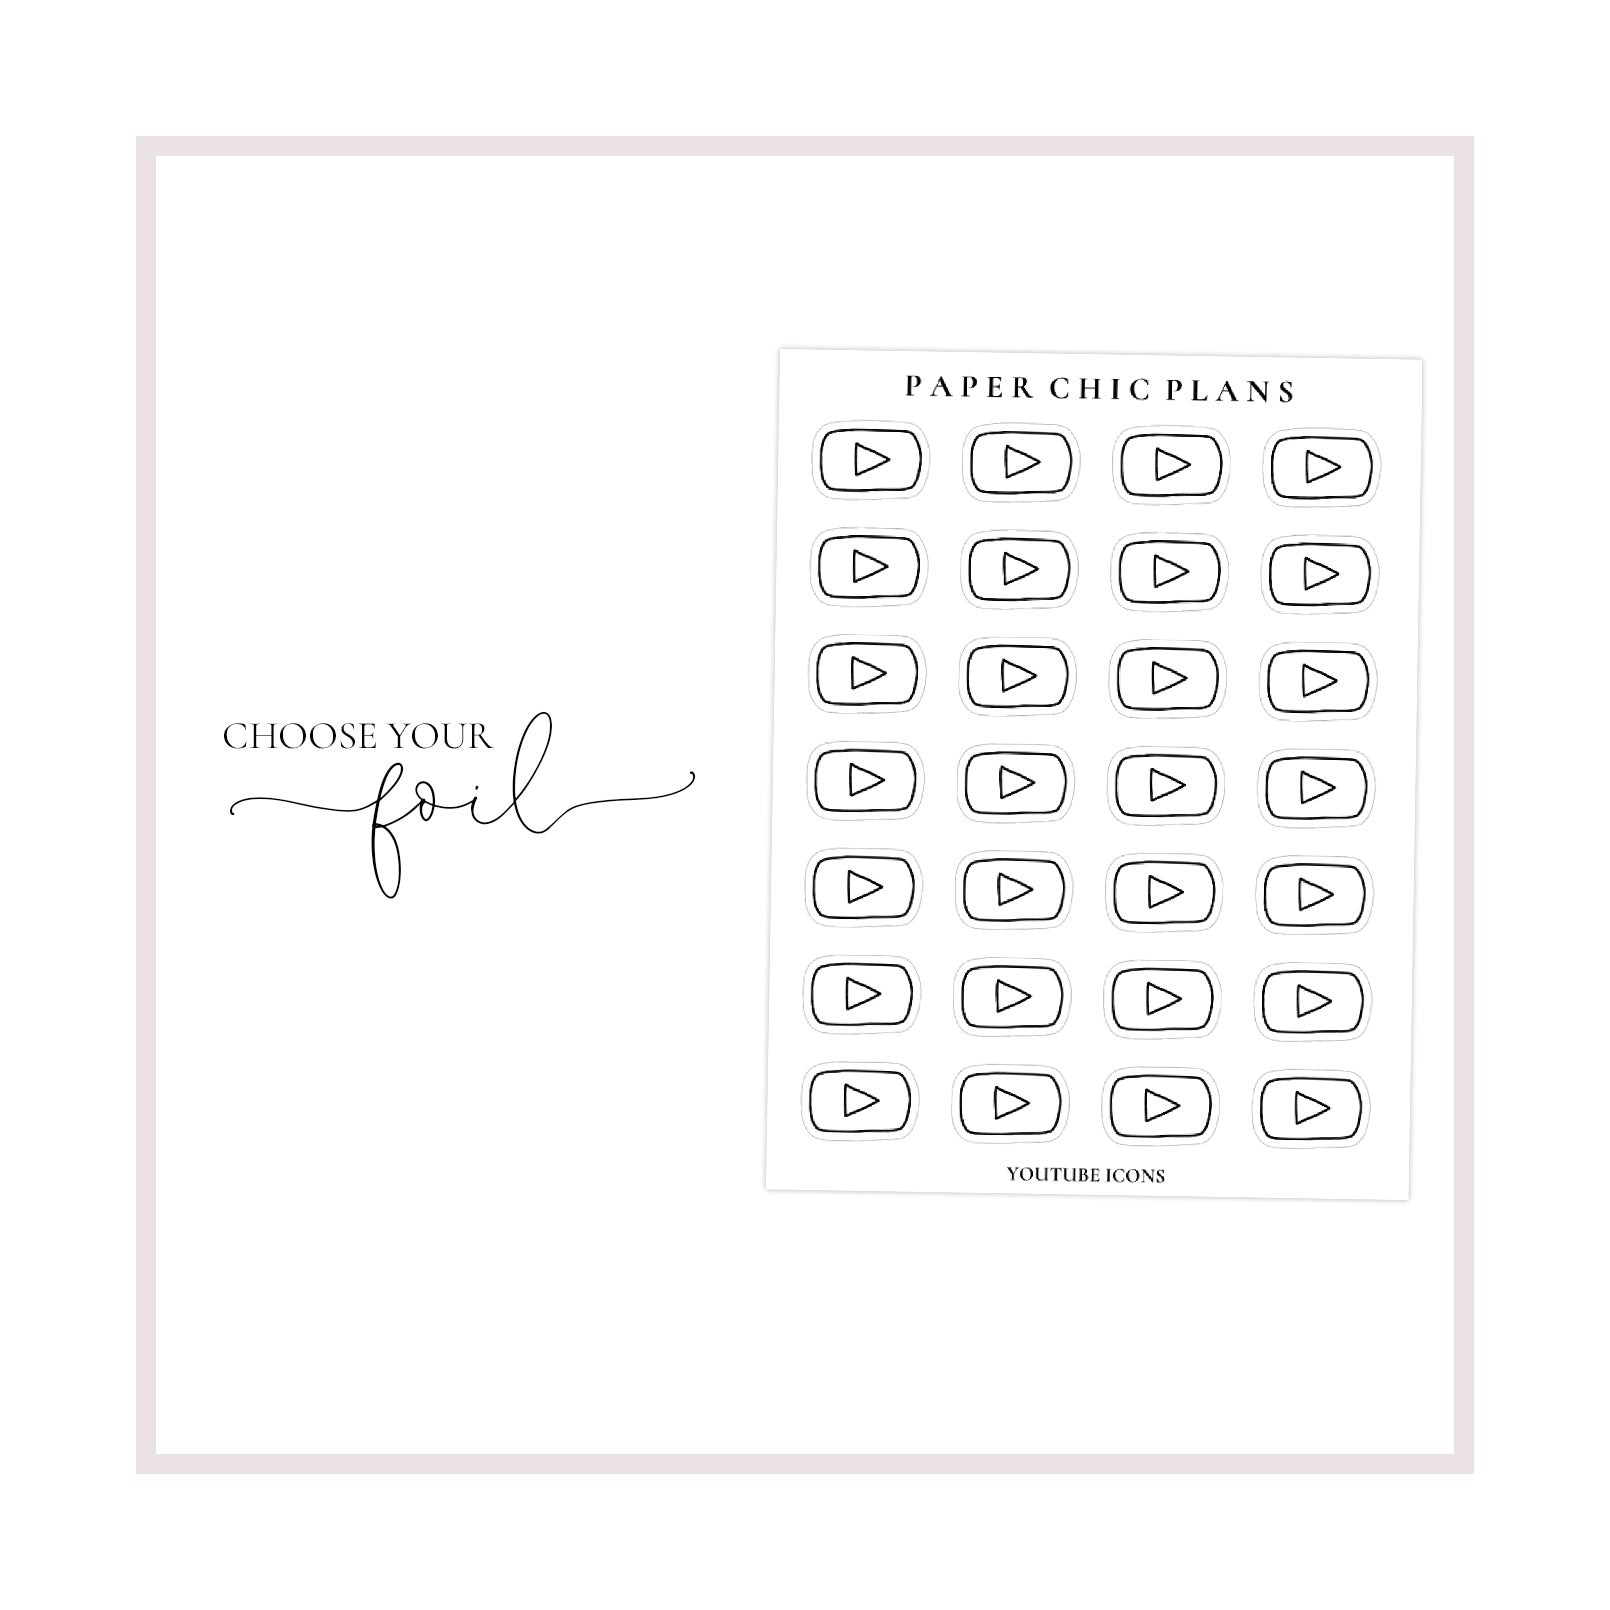 YouTube Icons // Foiled - Paper Chic Plans